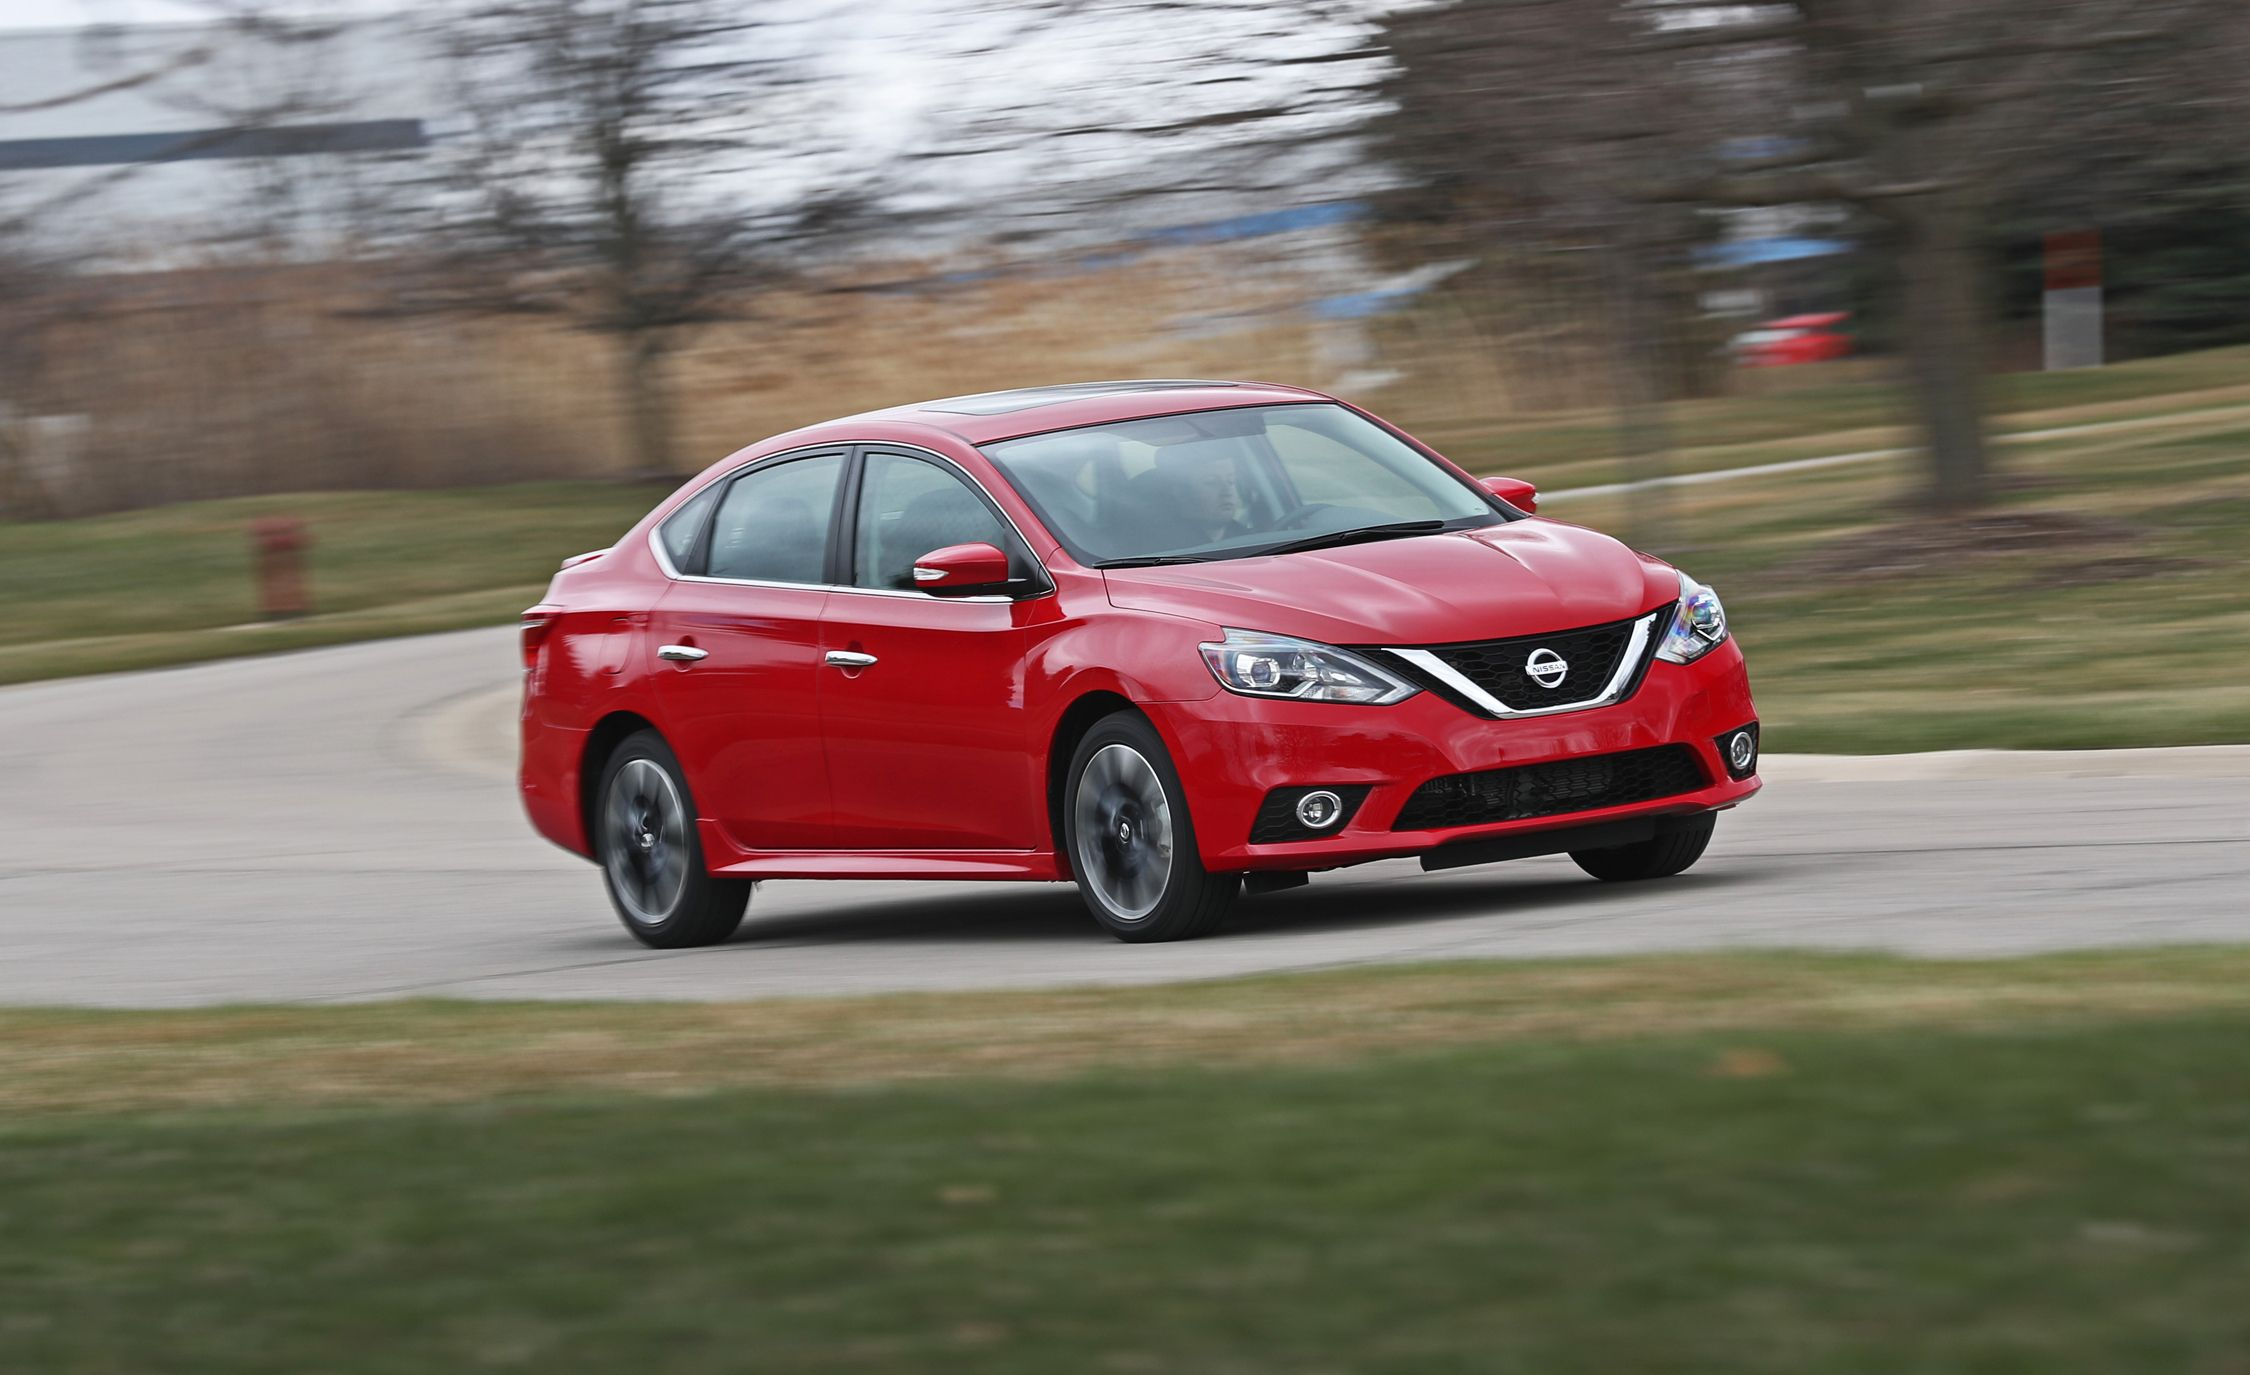 2018 Nissan Sentra Sr Turbo Manual Test Nismo Punch In An Sr